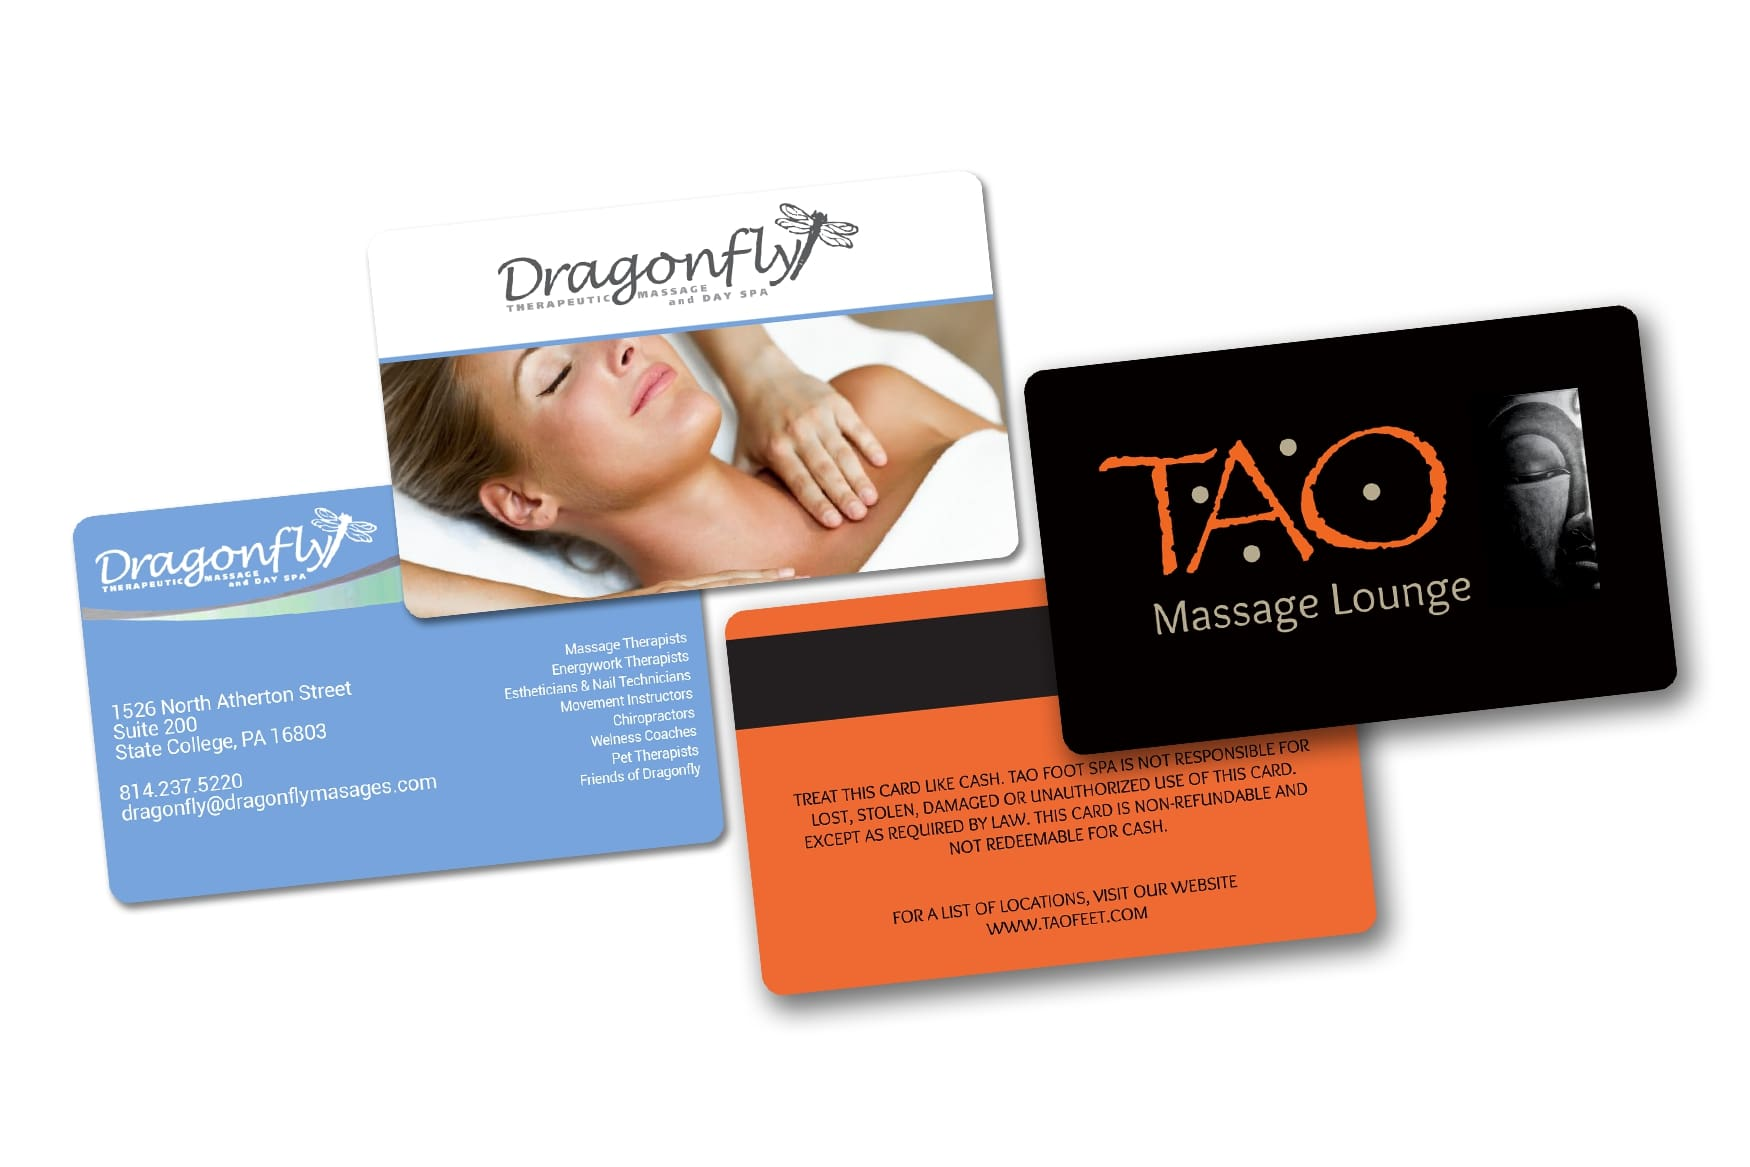 Massage therapy business cards and gift card with magnetic stripe